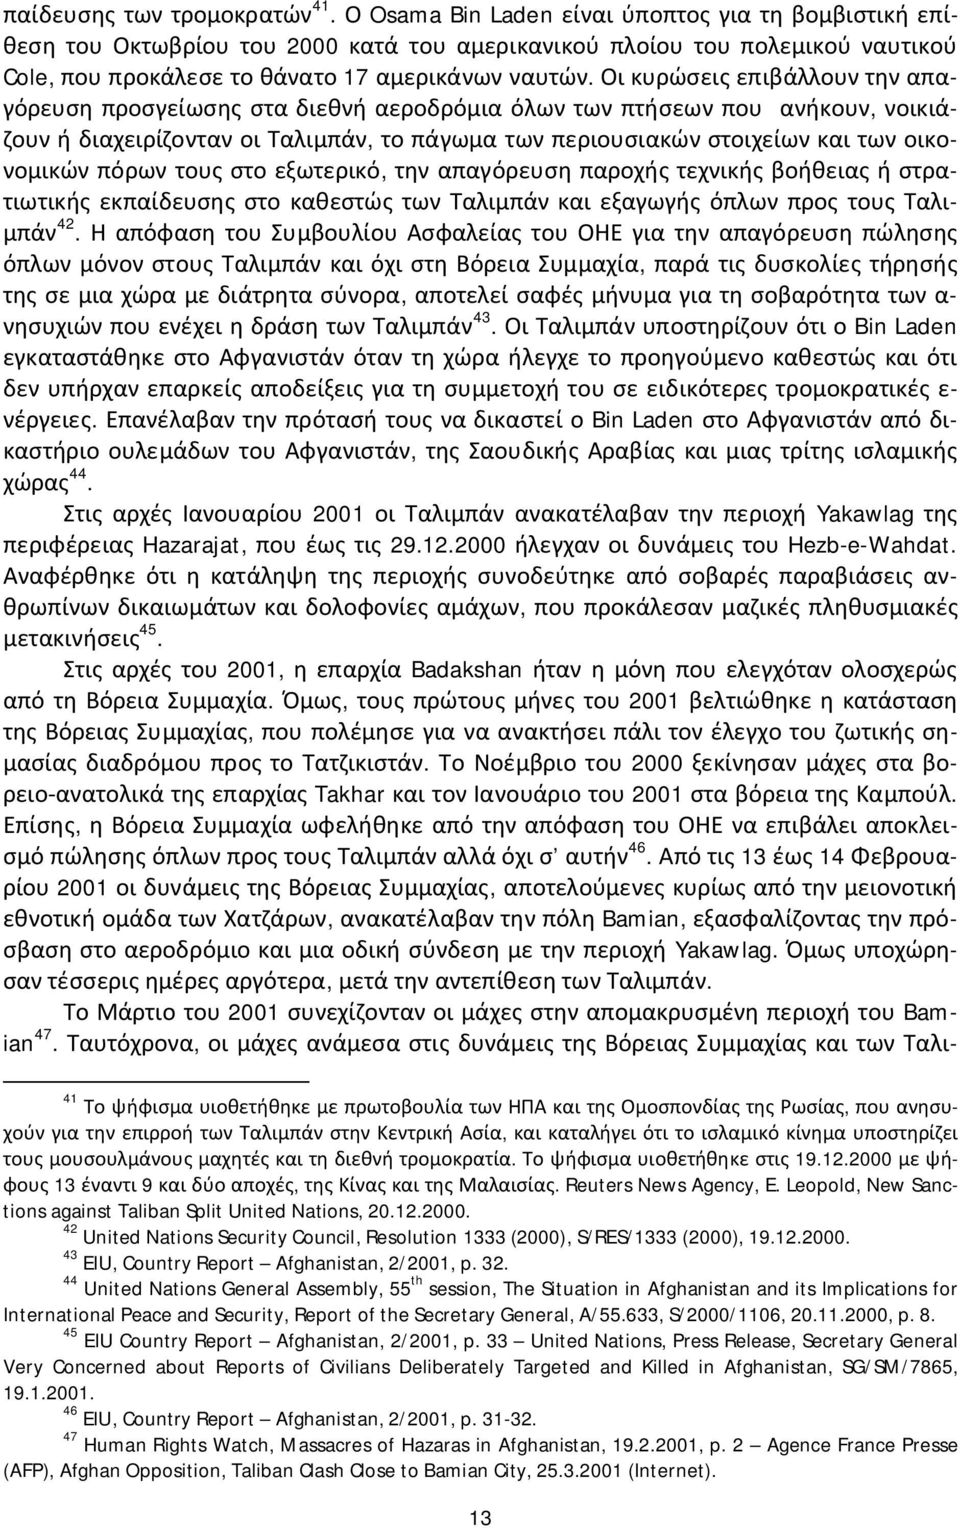 12.2000. 43 EIU, Country Report Afghanistan, 2/2001, p. 32.